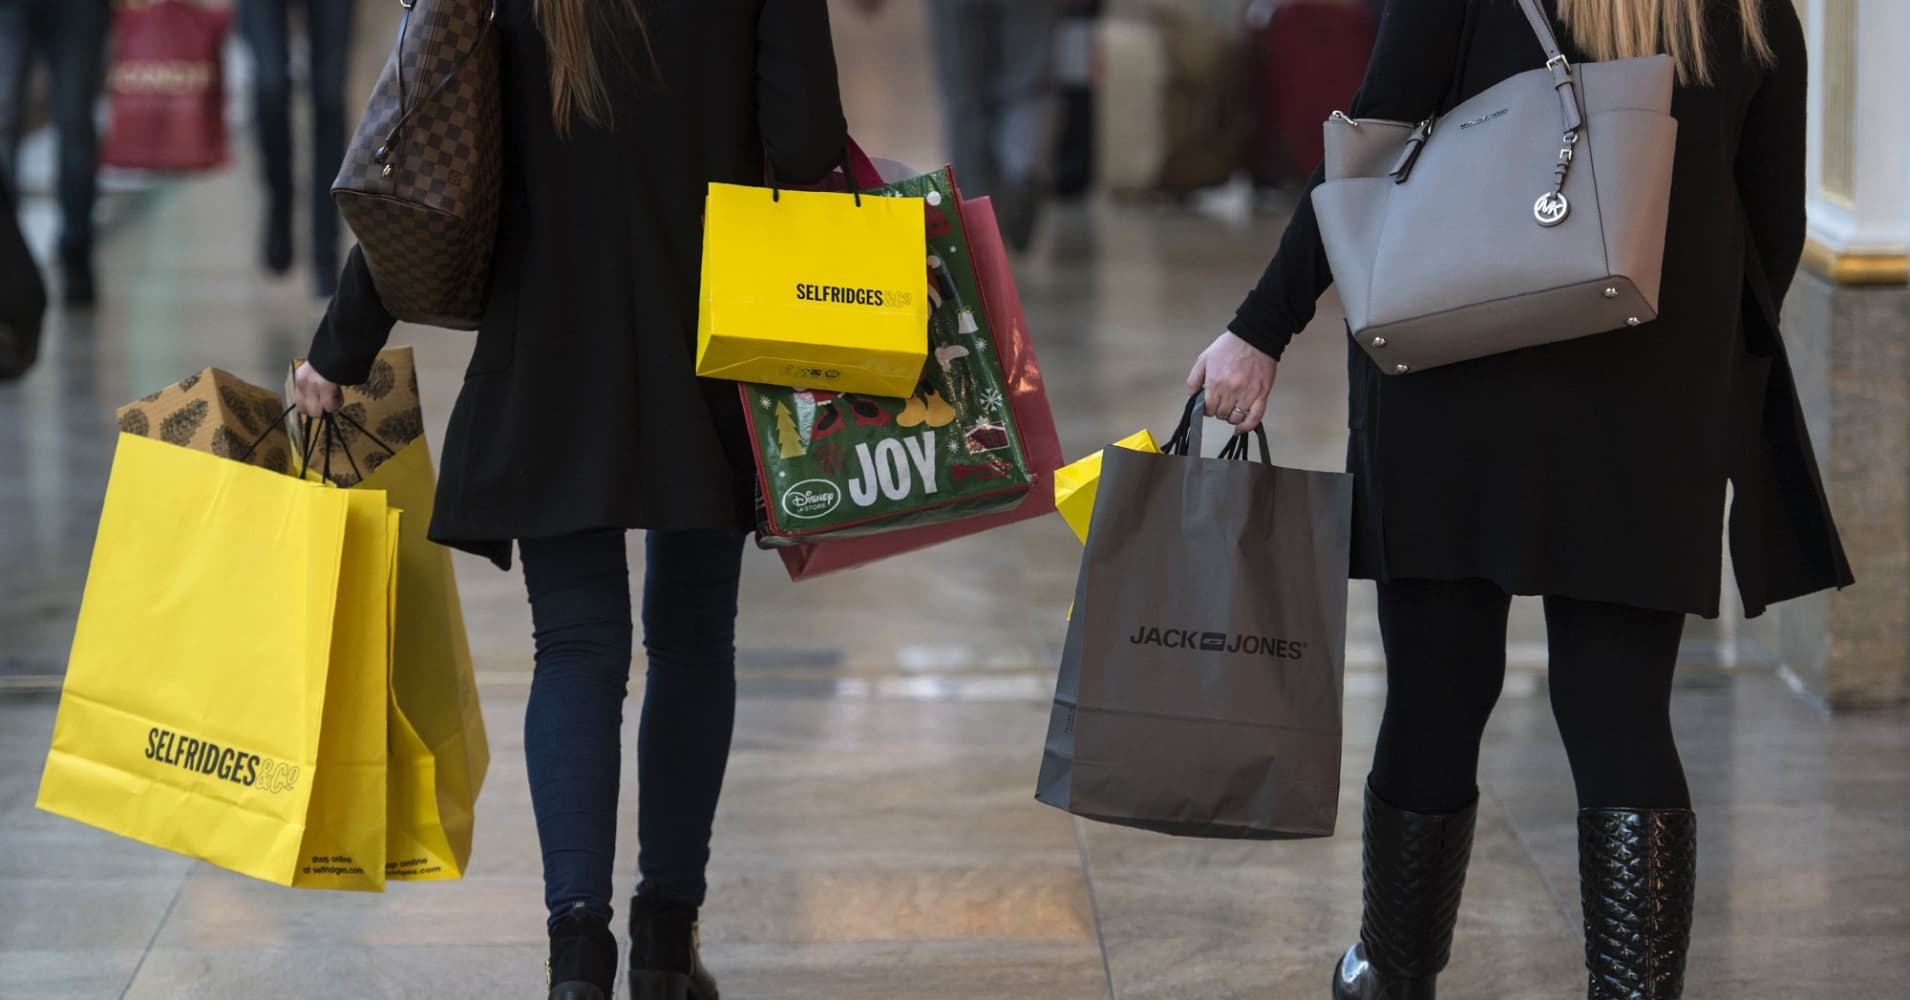 Following a monthly spending rule could save you thousands of dollars, says a financial planner who studies rich people's habits.